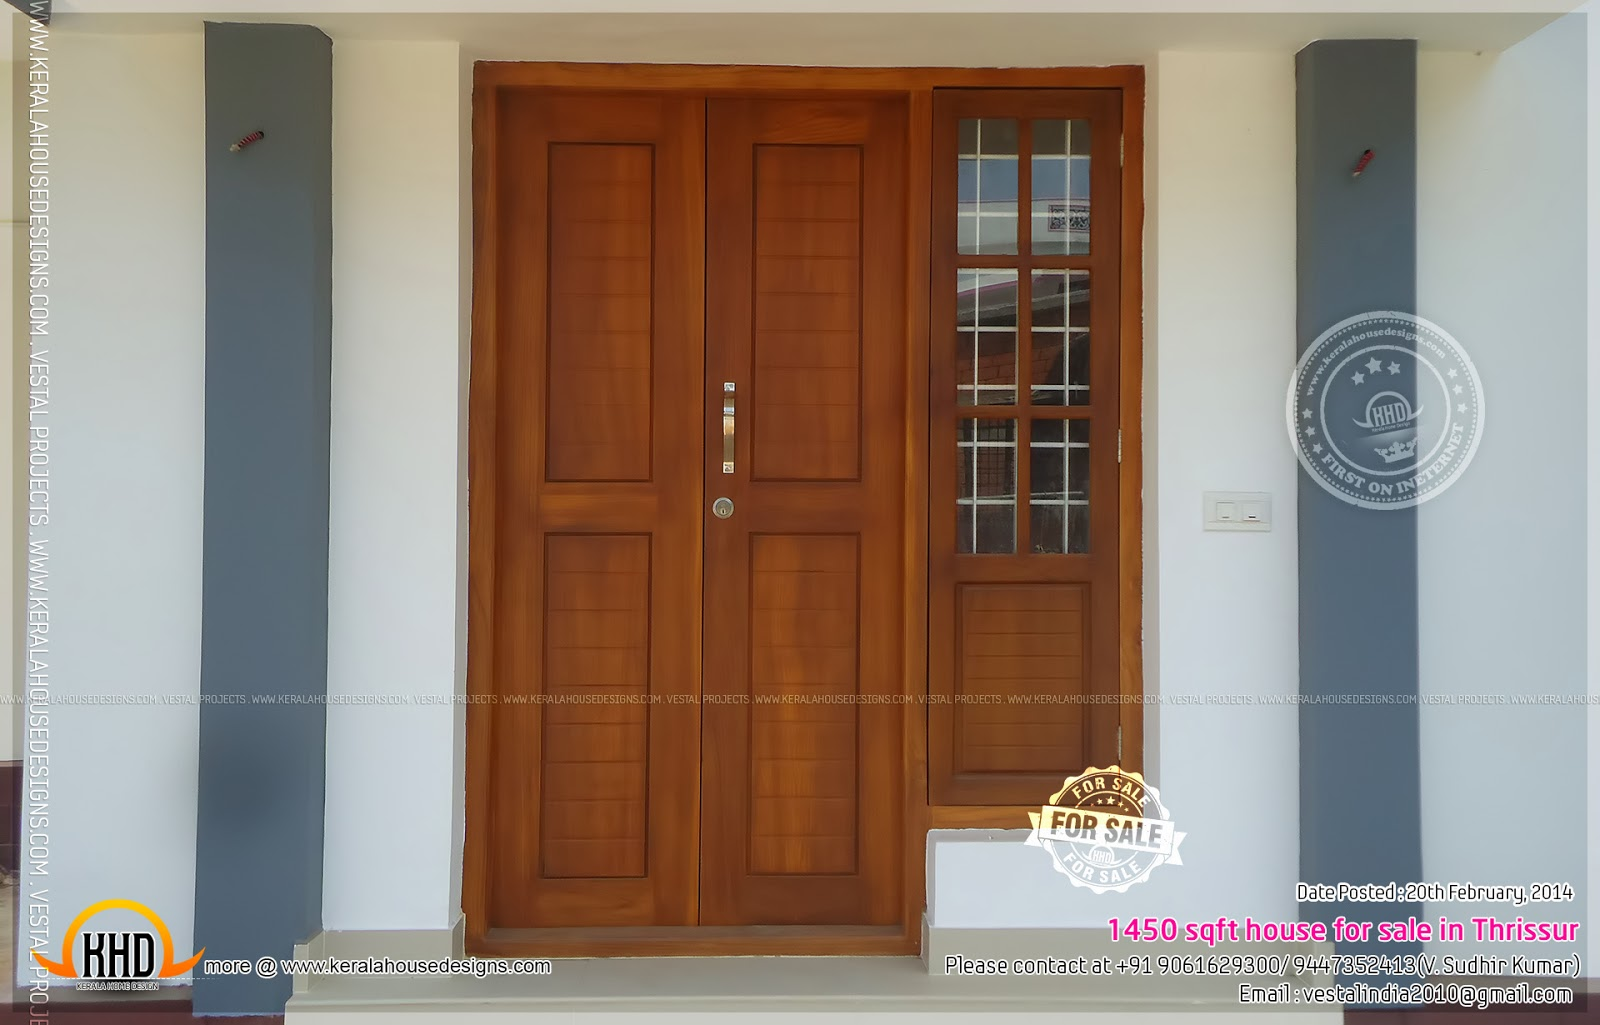 1450 sqft house for sale in thrissur kerala home design - Single main door designs for home in india ...